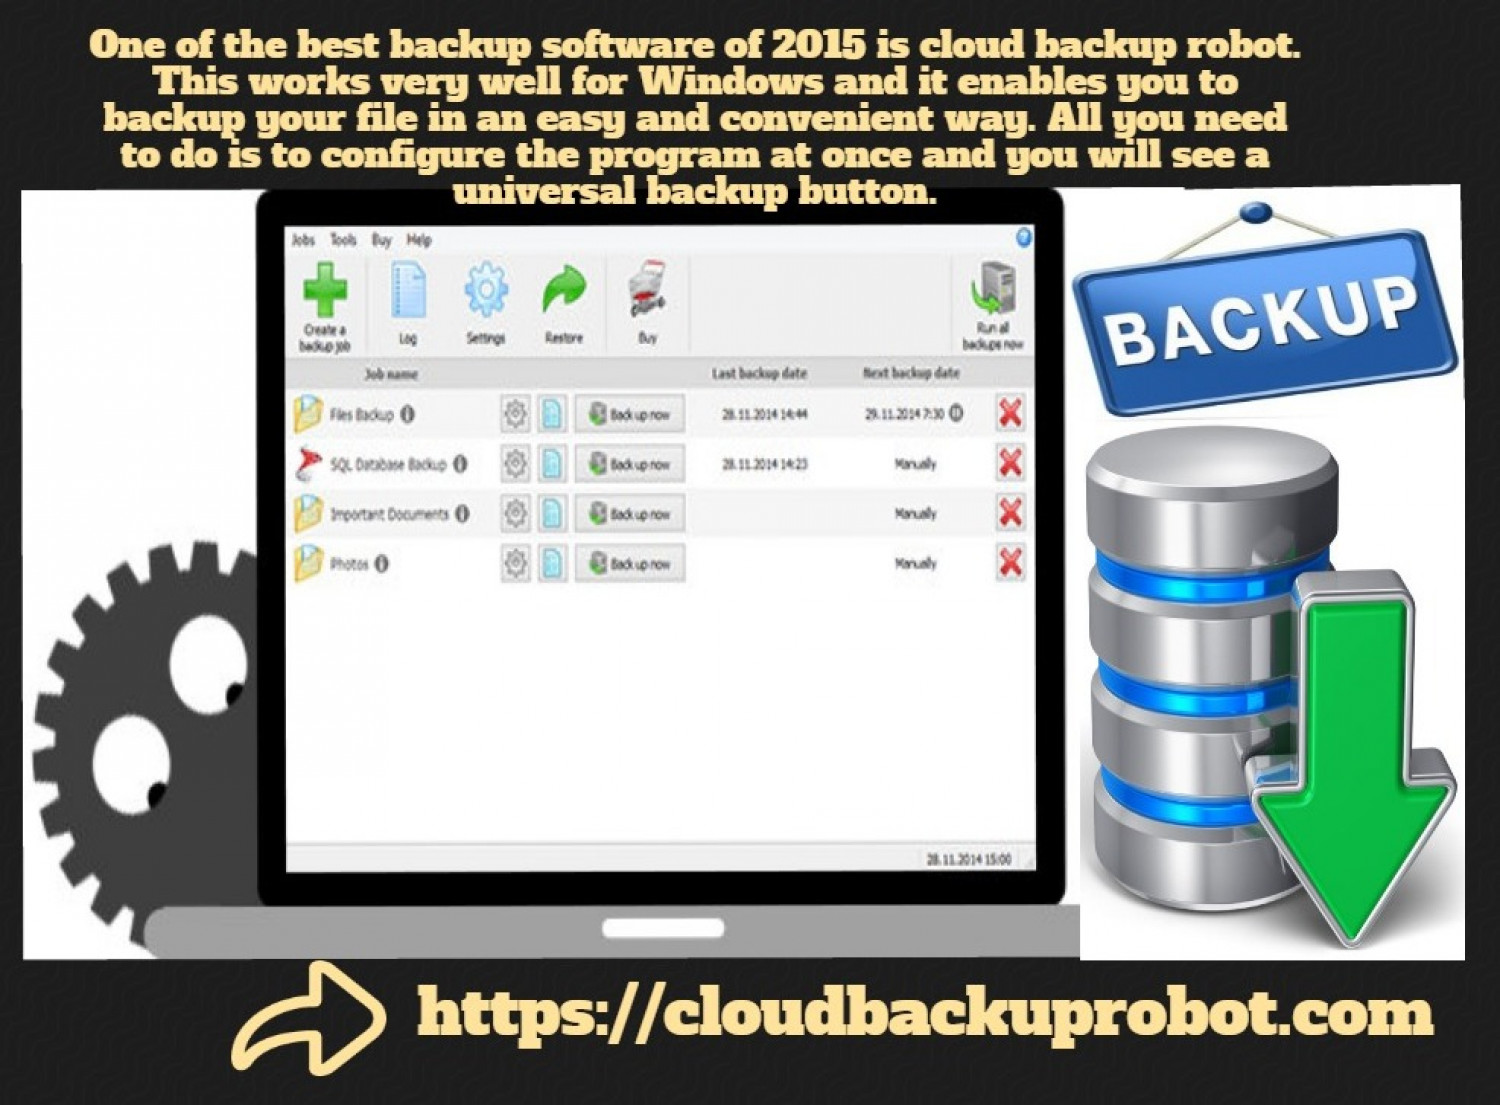 Best Backup Software of 2015 Is Recommended By Computer Specialists | Visual.ly